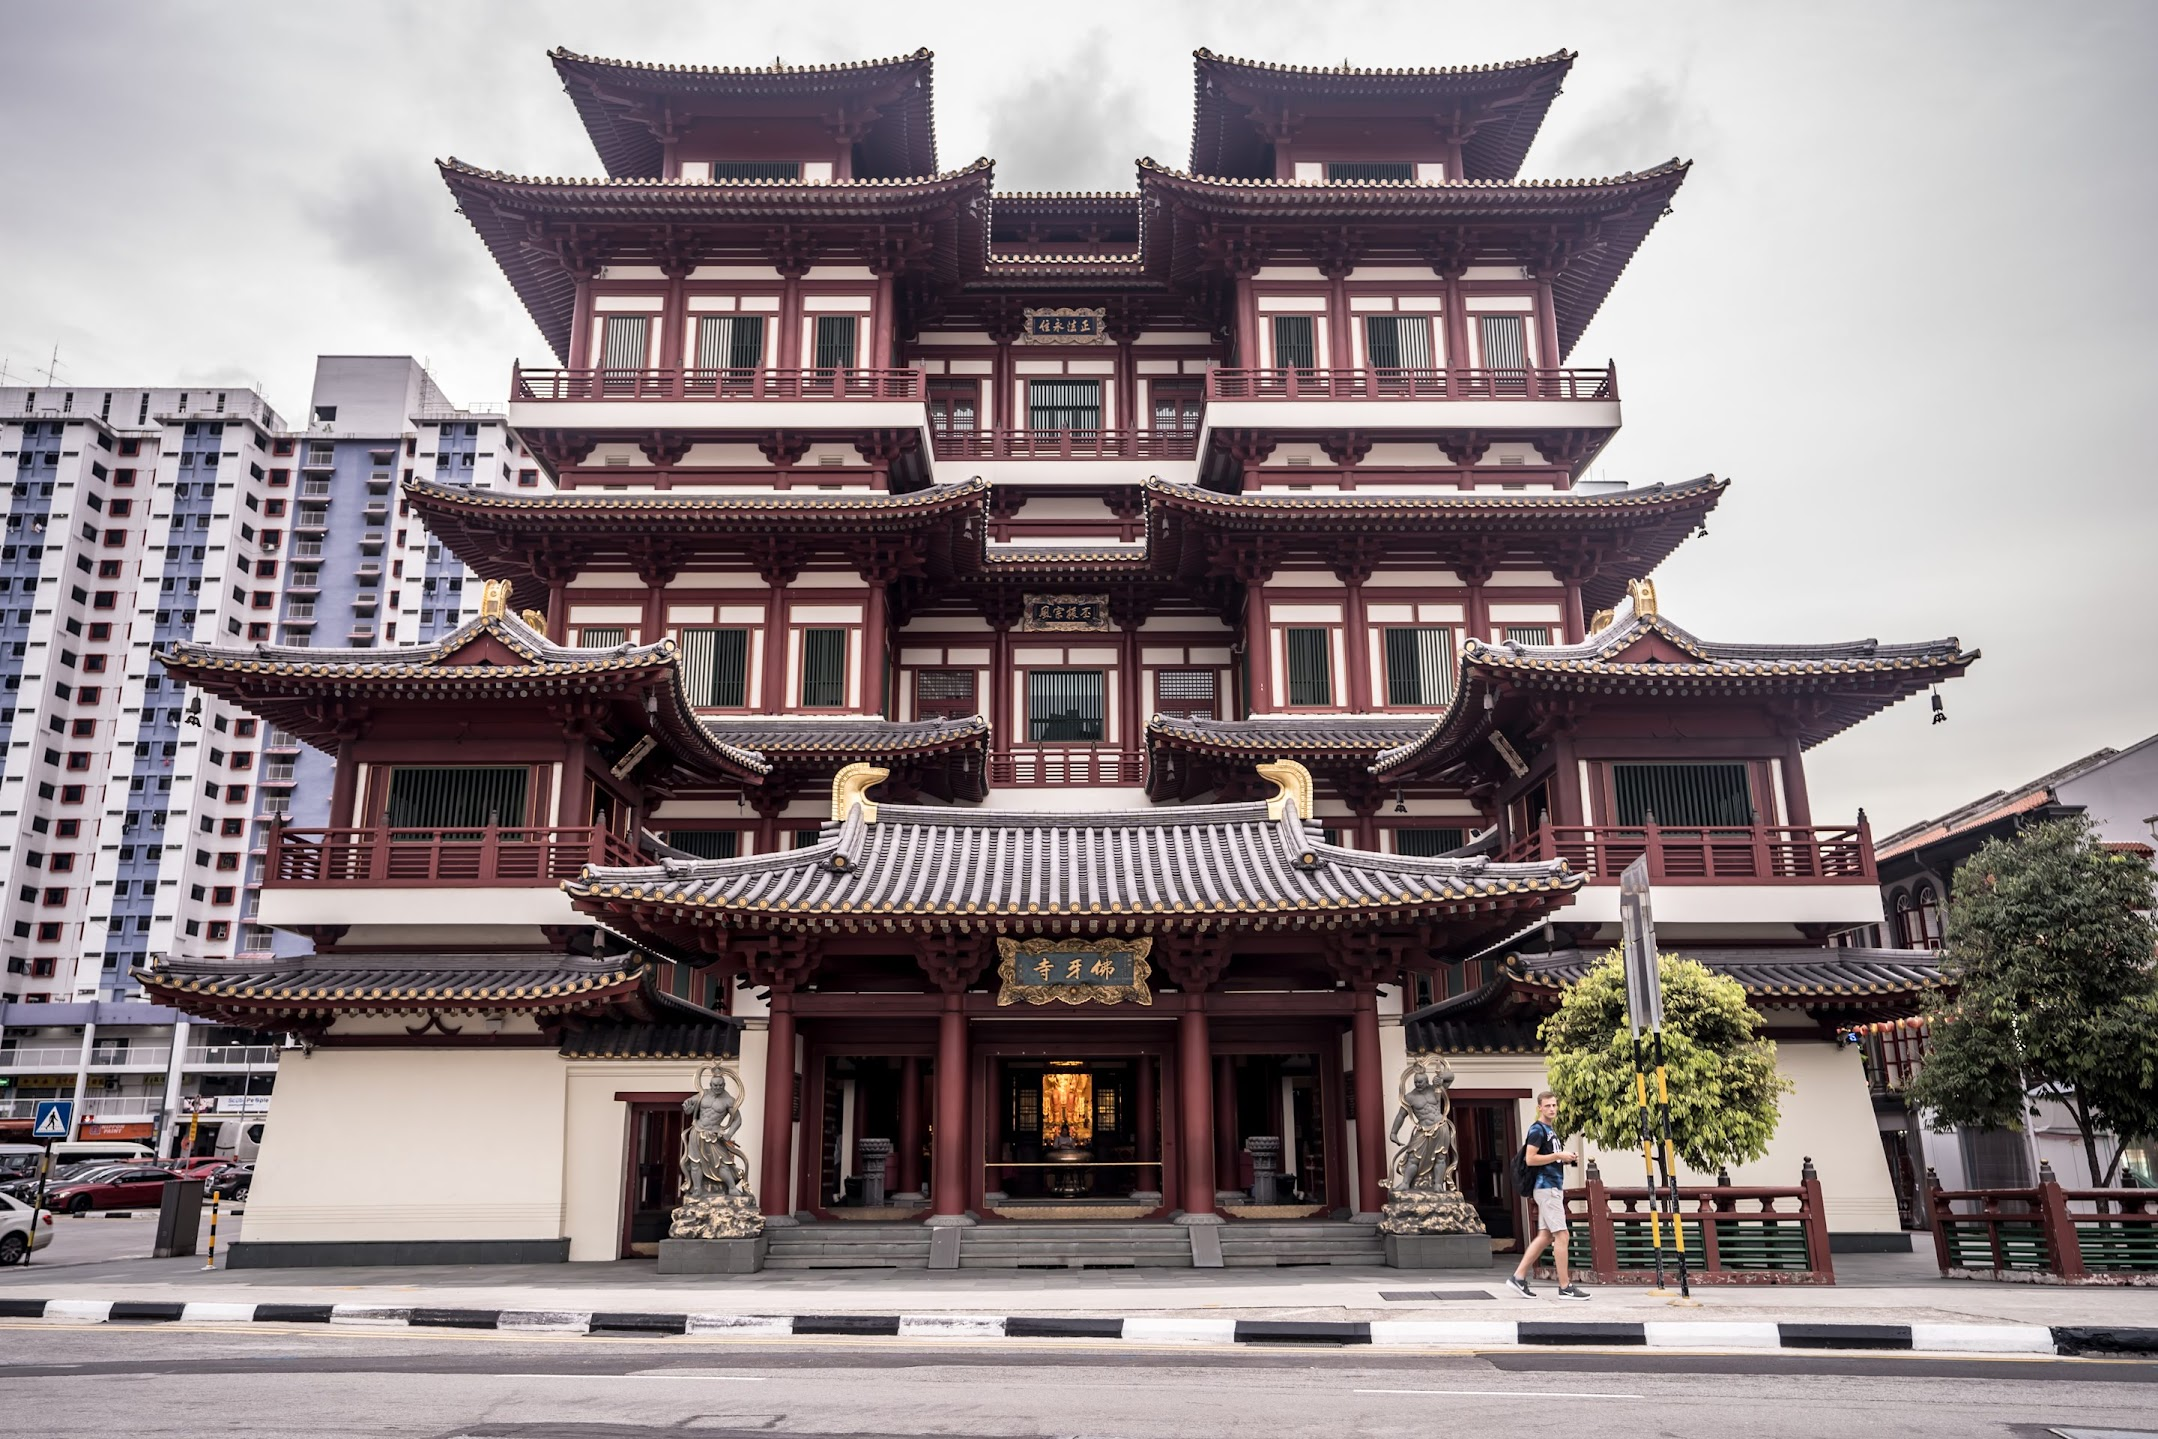 シンガポール チャイナタウン 新加坡佛牙寺龍牙院 (Buddha Tooth Relic Temple and MuseumBuddha Tooth Relic Temple and Museum)1